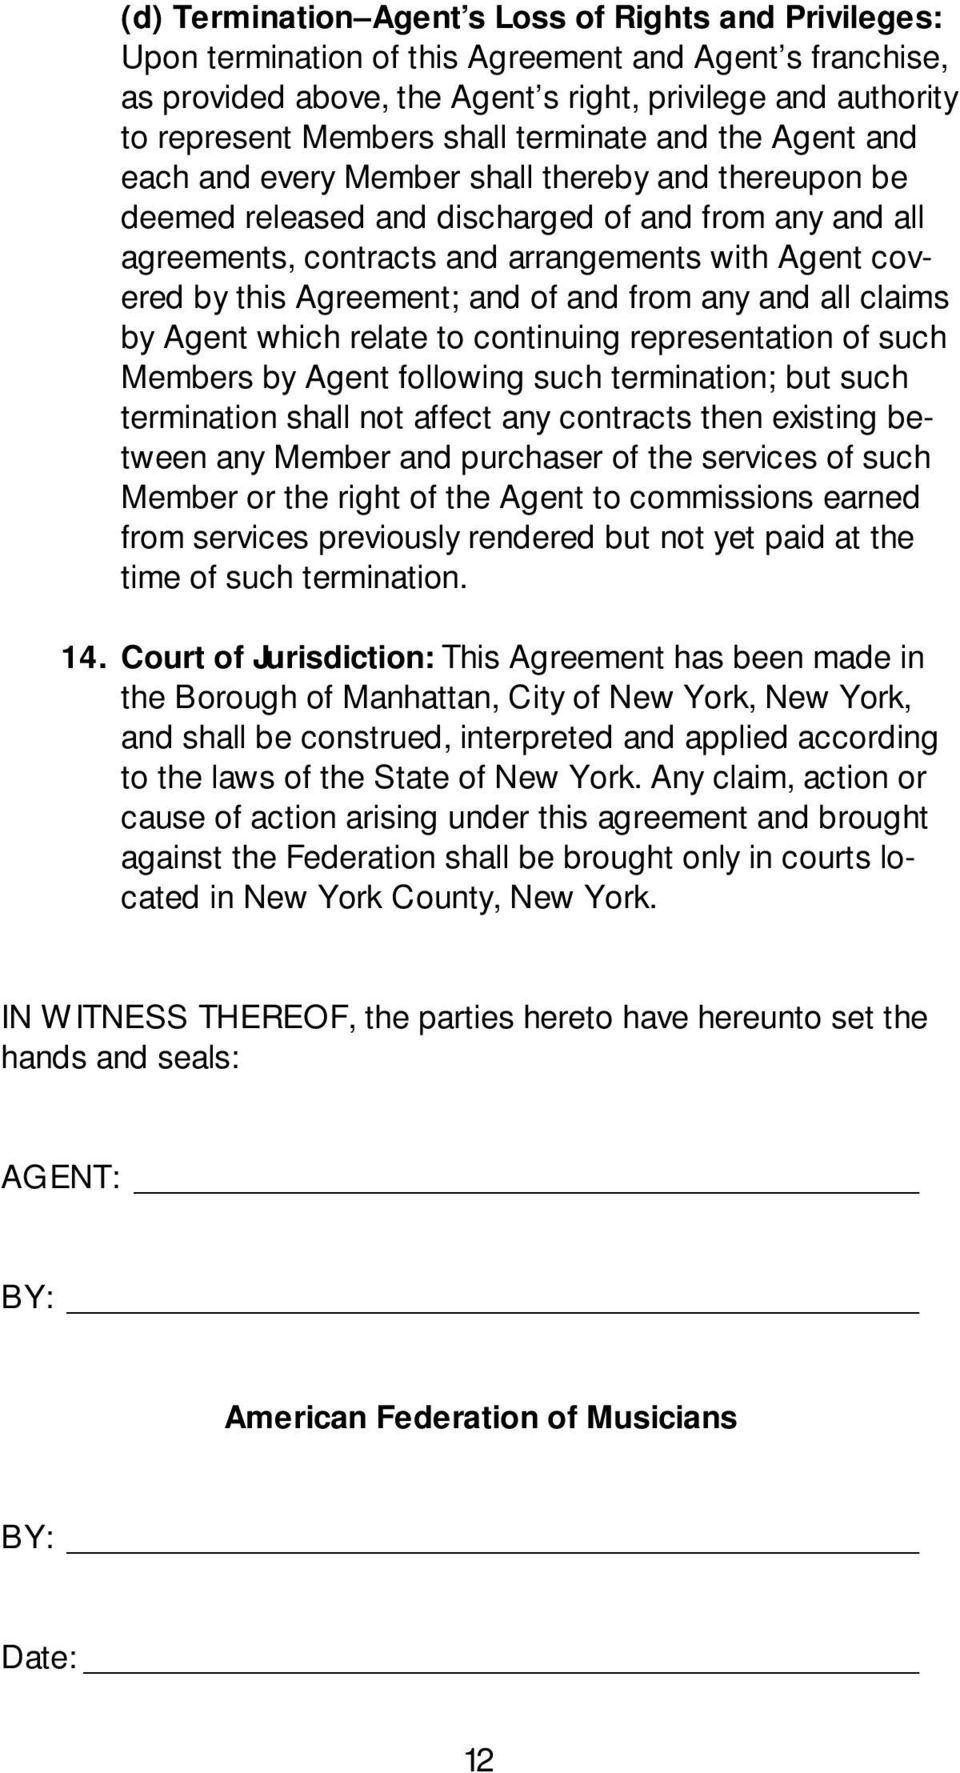 by this Agreement; and of and from any and all claims by Agent which relate to continuing representation of such Members by Agent following such termination; but such termination shall not affect any